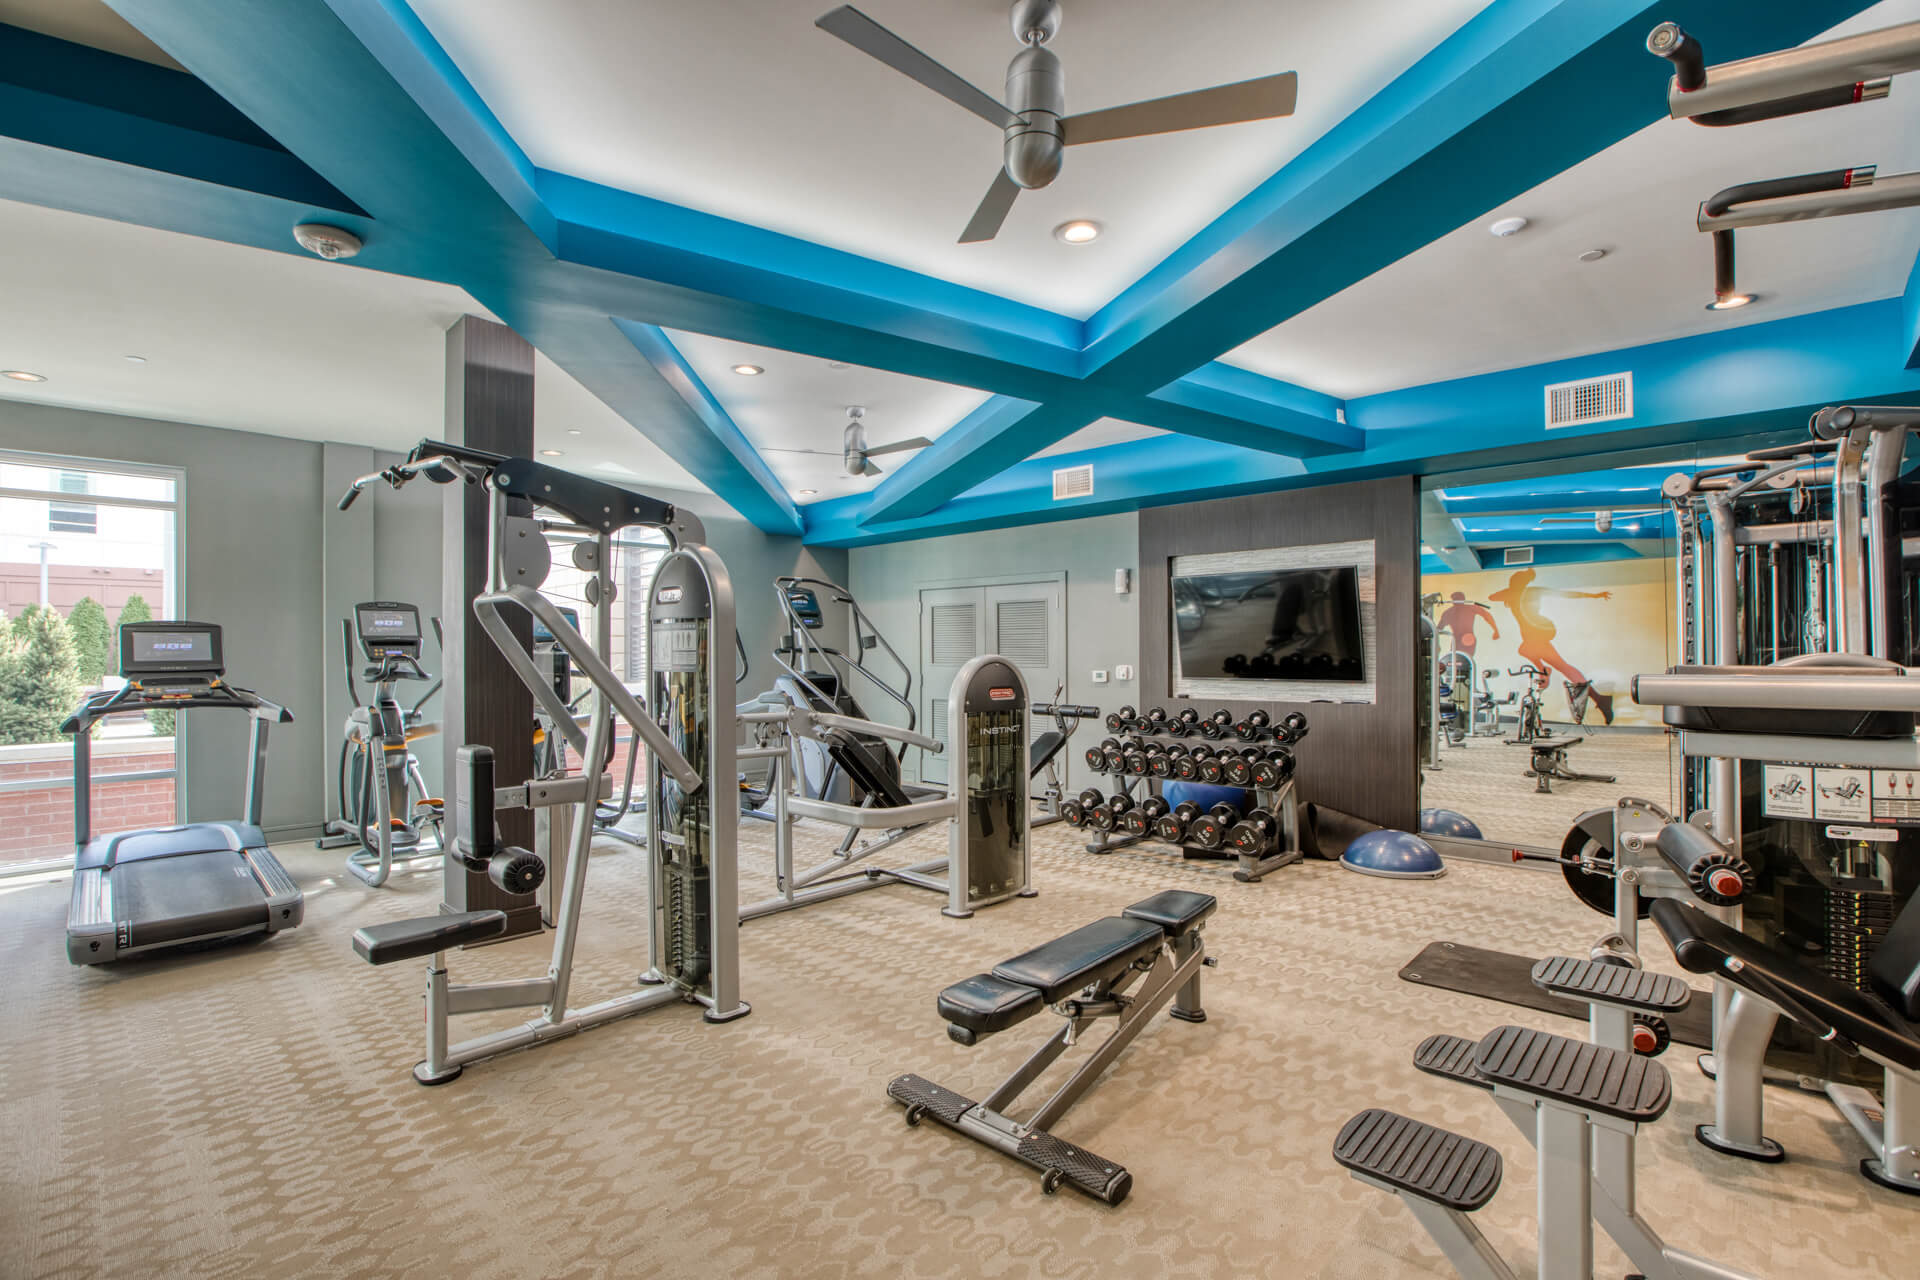 Free Weights And Cardio Equipment at Centric LoHi by Windsor, Denver, Colorado